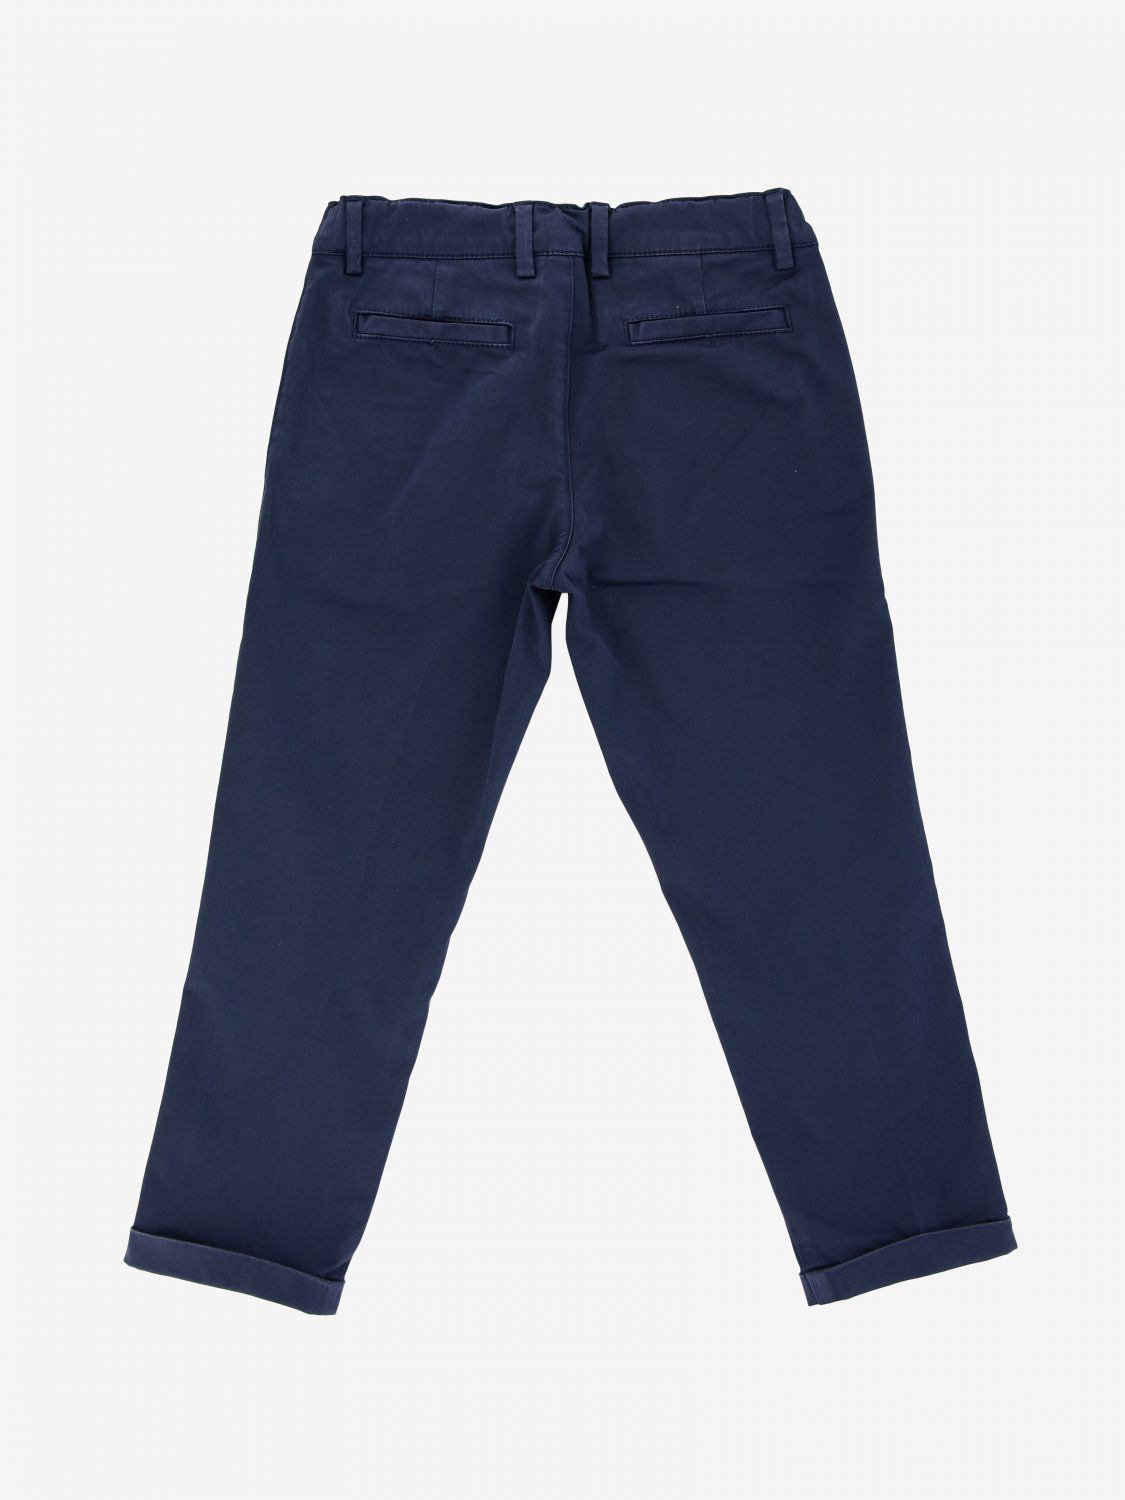 Fay cotton trousers blue 2